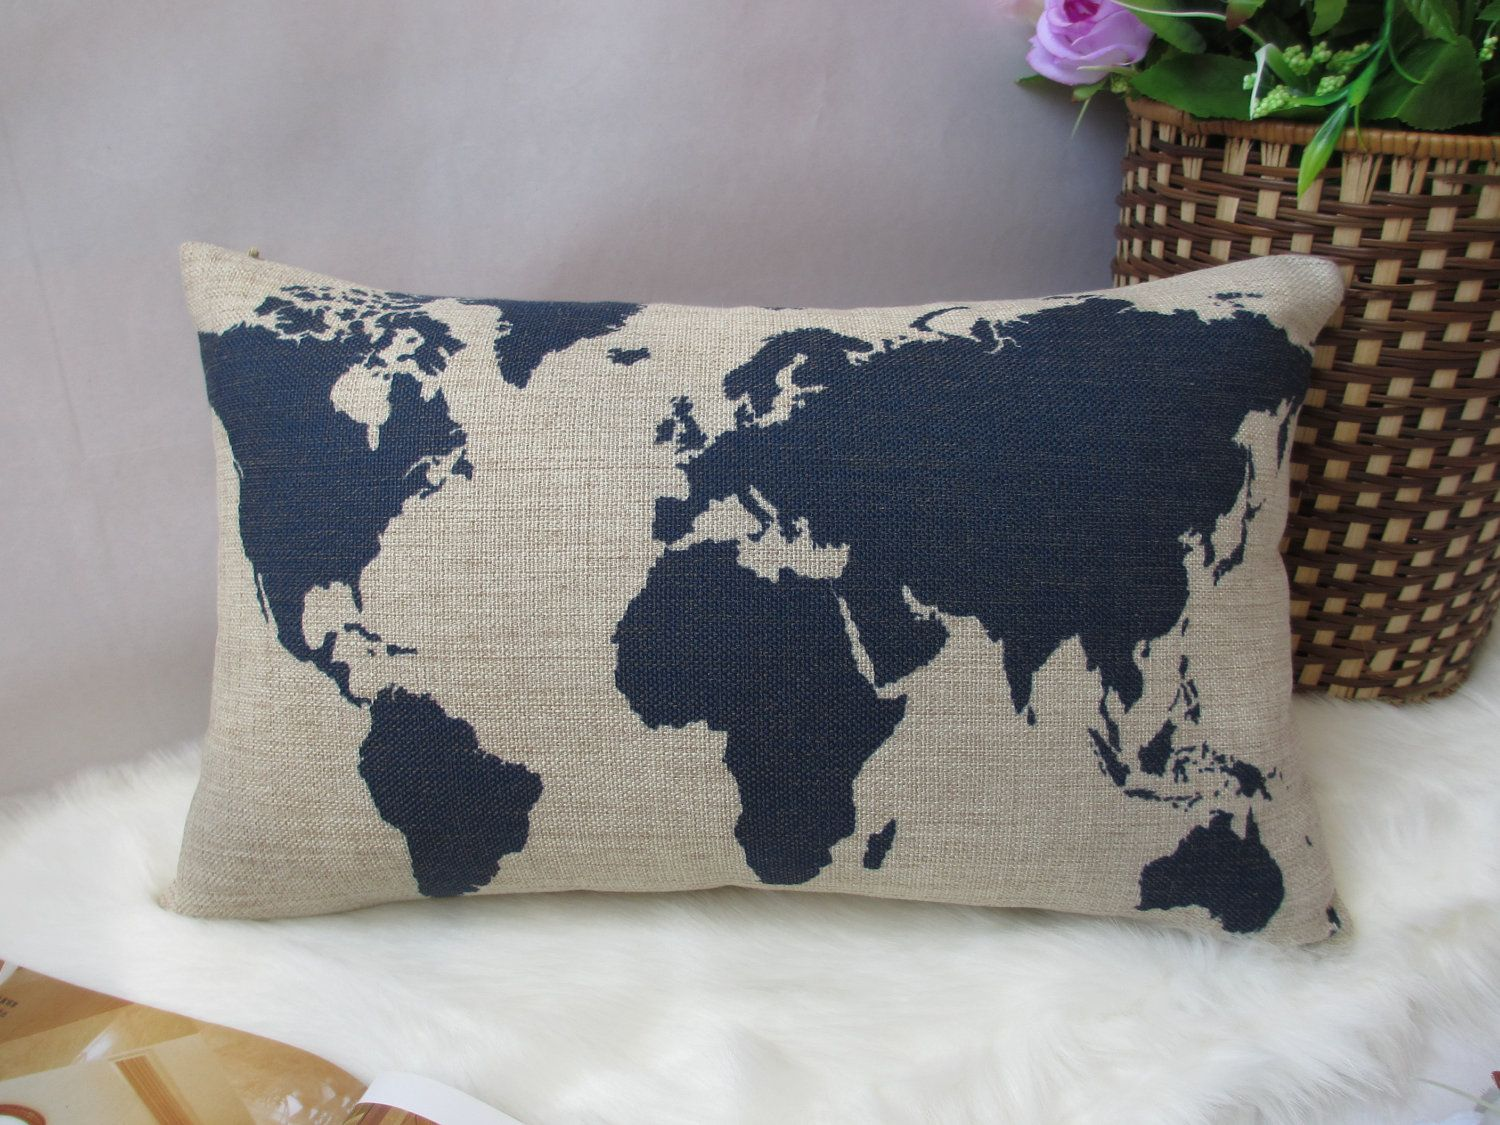 1 cotton linen world map simple printed decorative pillow cover 1 cotton linen world map simple printed decorative pillow cover home decor cushion case by xinghuajiang on etsy gumiabroncs Choice Image